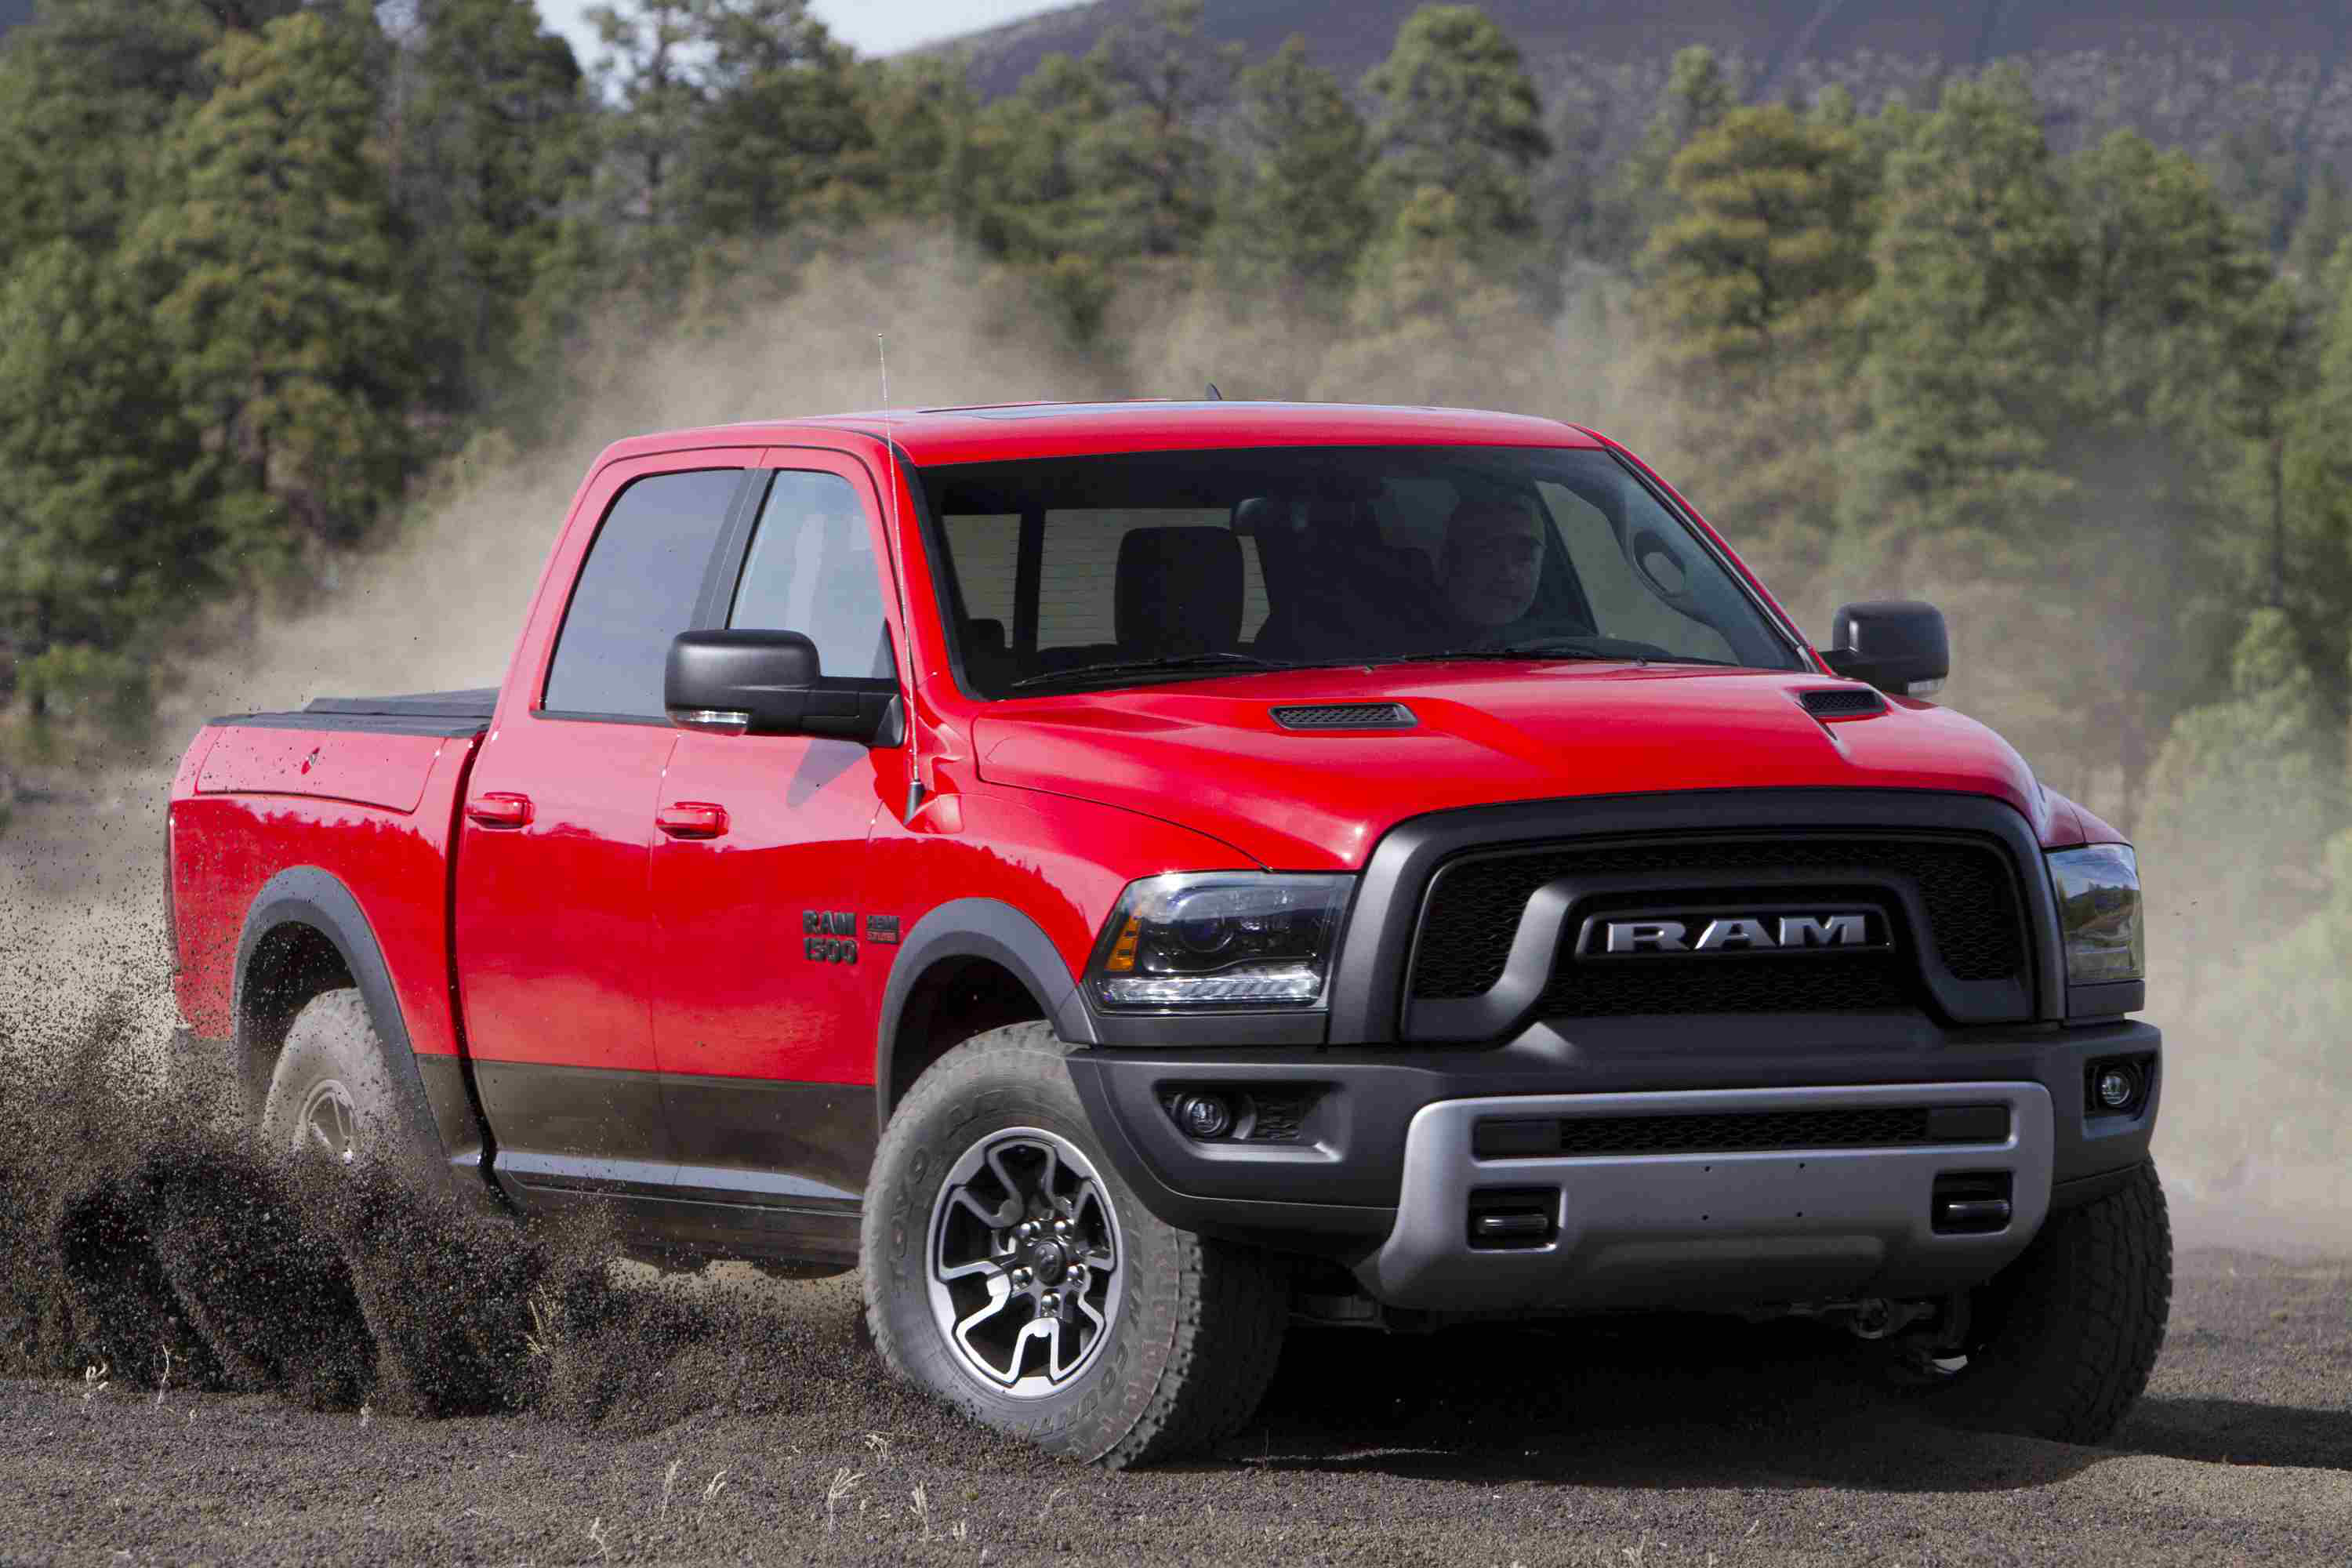 Ram Truck Sees 2016 As Being A Banner Year For Their 1 2 Ton Pickups With Lot Of Carry Over From 2017 Blended More Fine Tuning To Por Mid